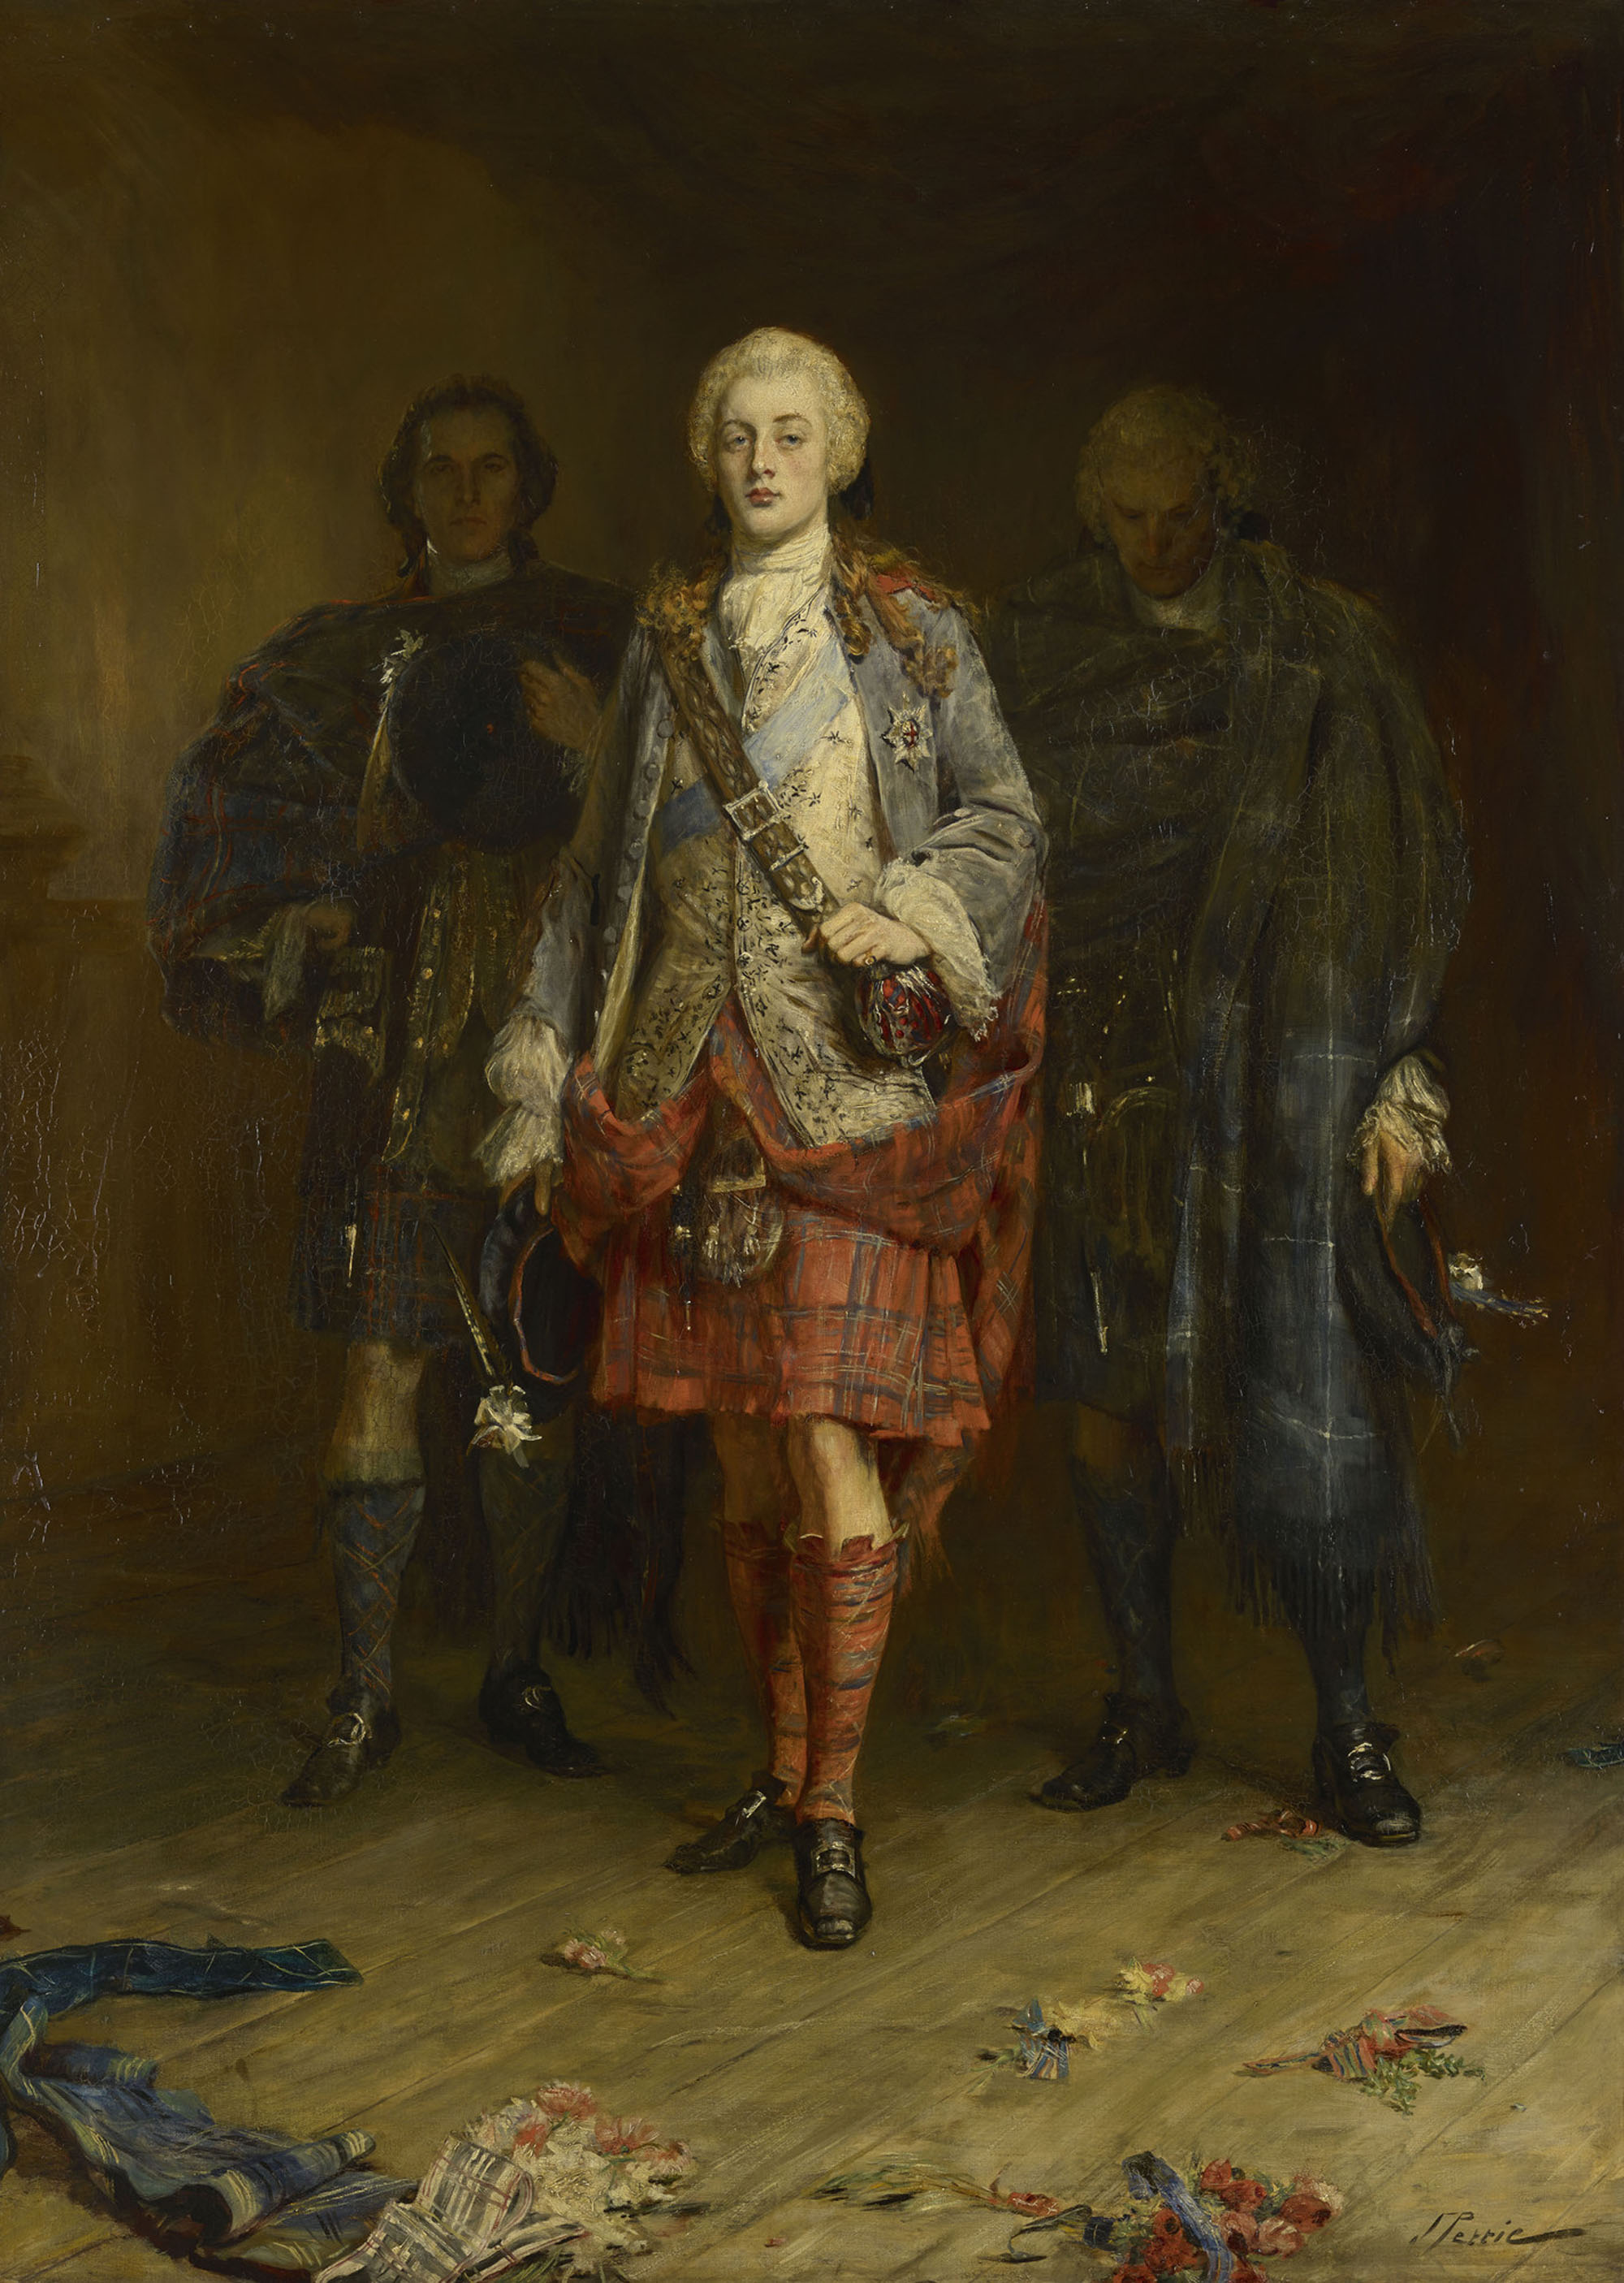 a painting of Bonnie Prince Charlie flanked by two men in kilts